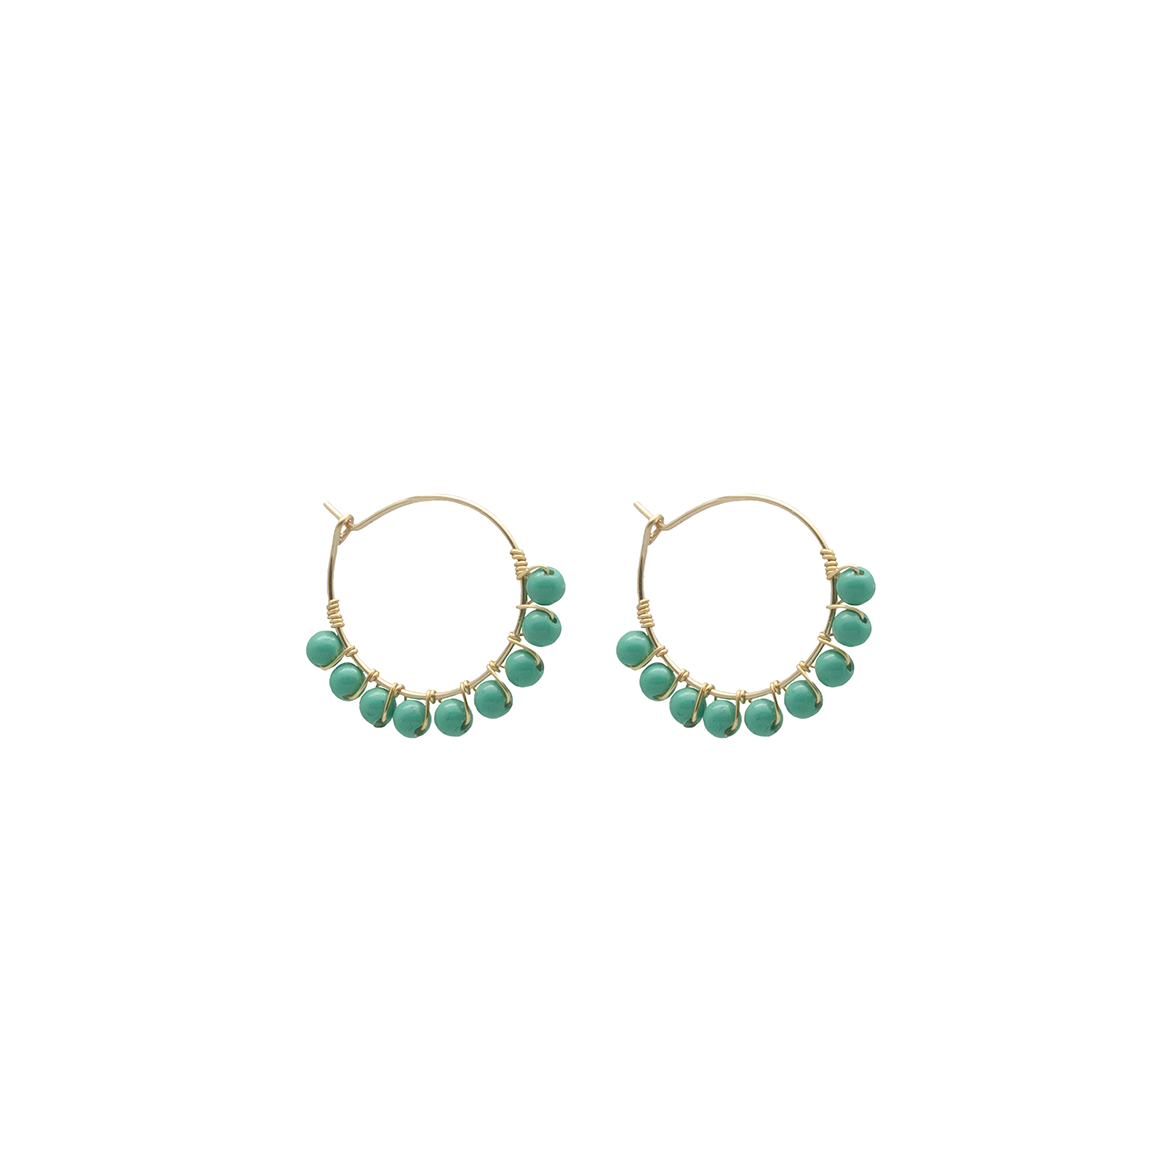 Vivien Walsh Beaded Mini Hoops